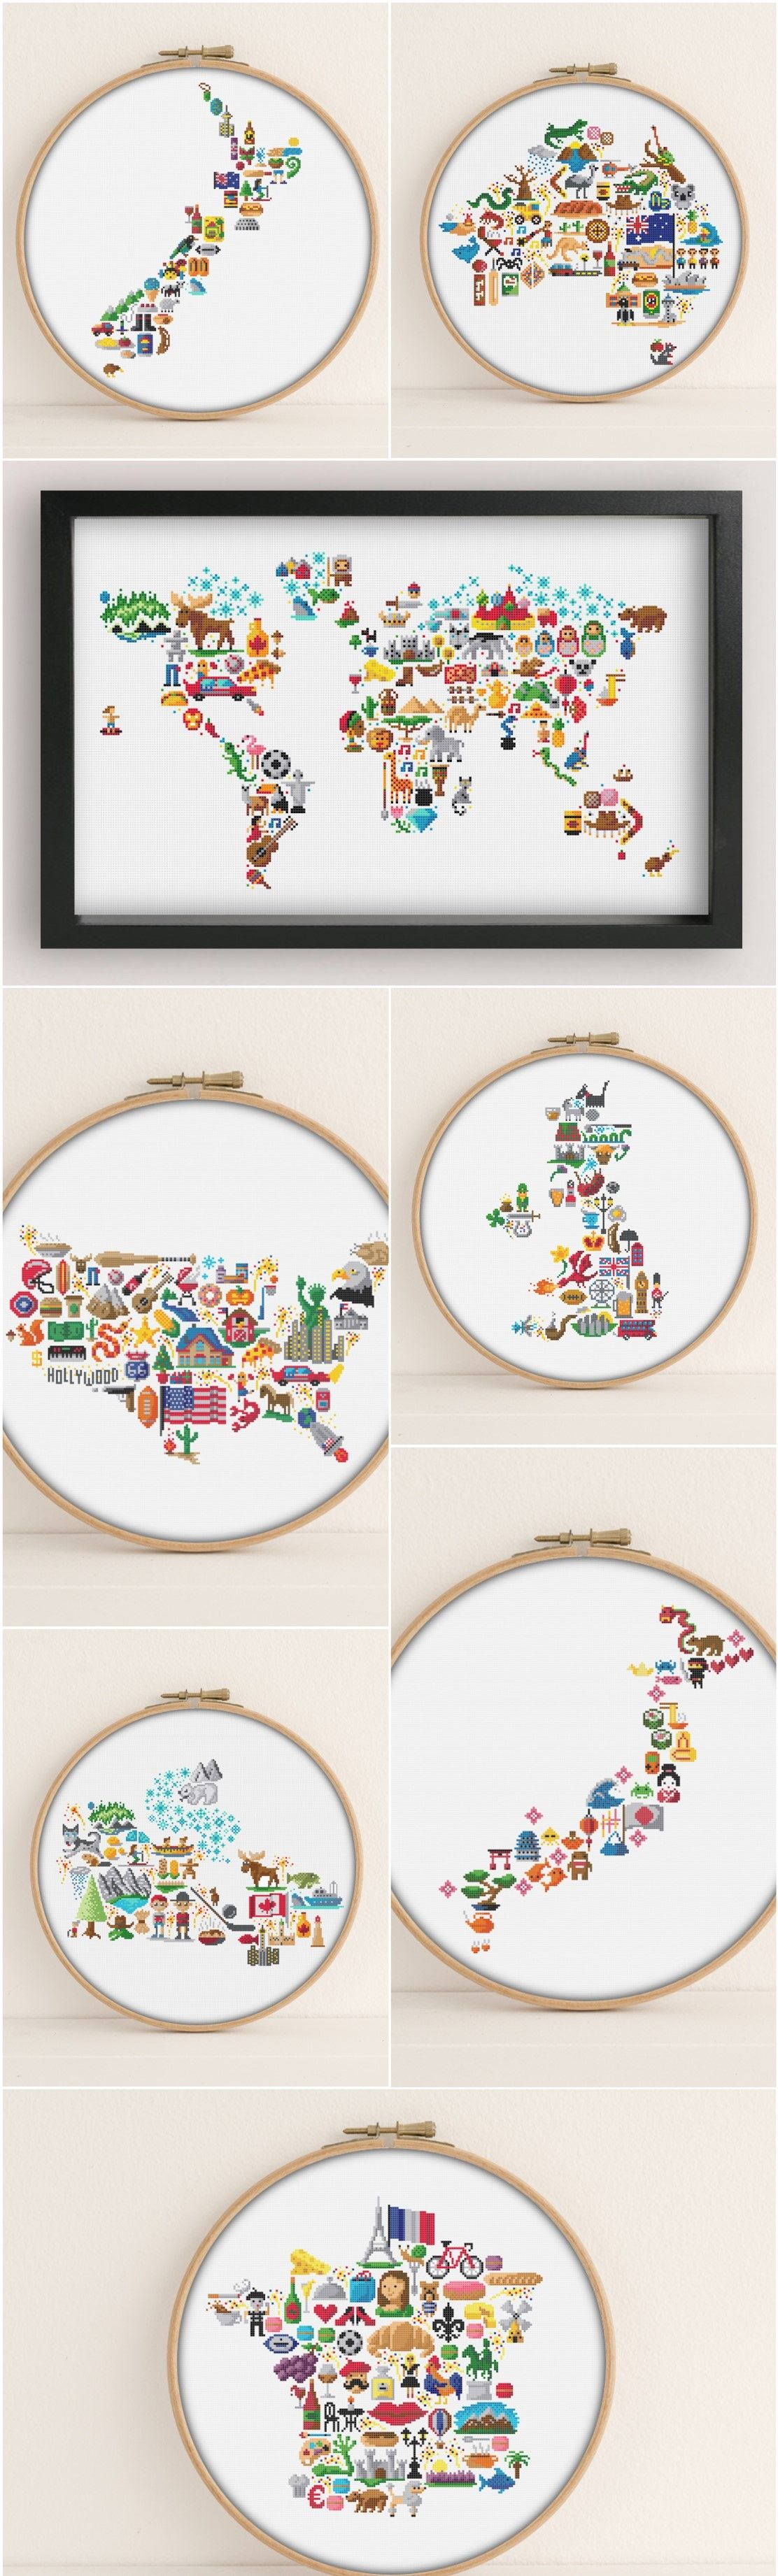 Cultural icon map cross stitch patterns world map america new cross stitch patterns modern vibrant and original by pixlstitch cultural icon map cross stitch patterns world map america gumiabroncs Gallery